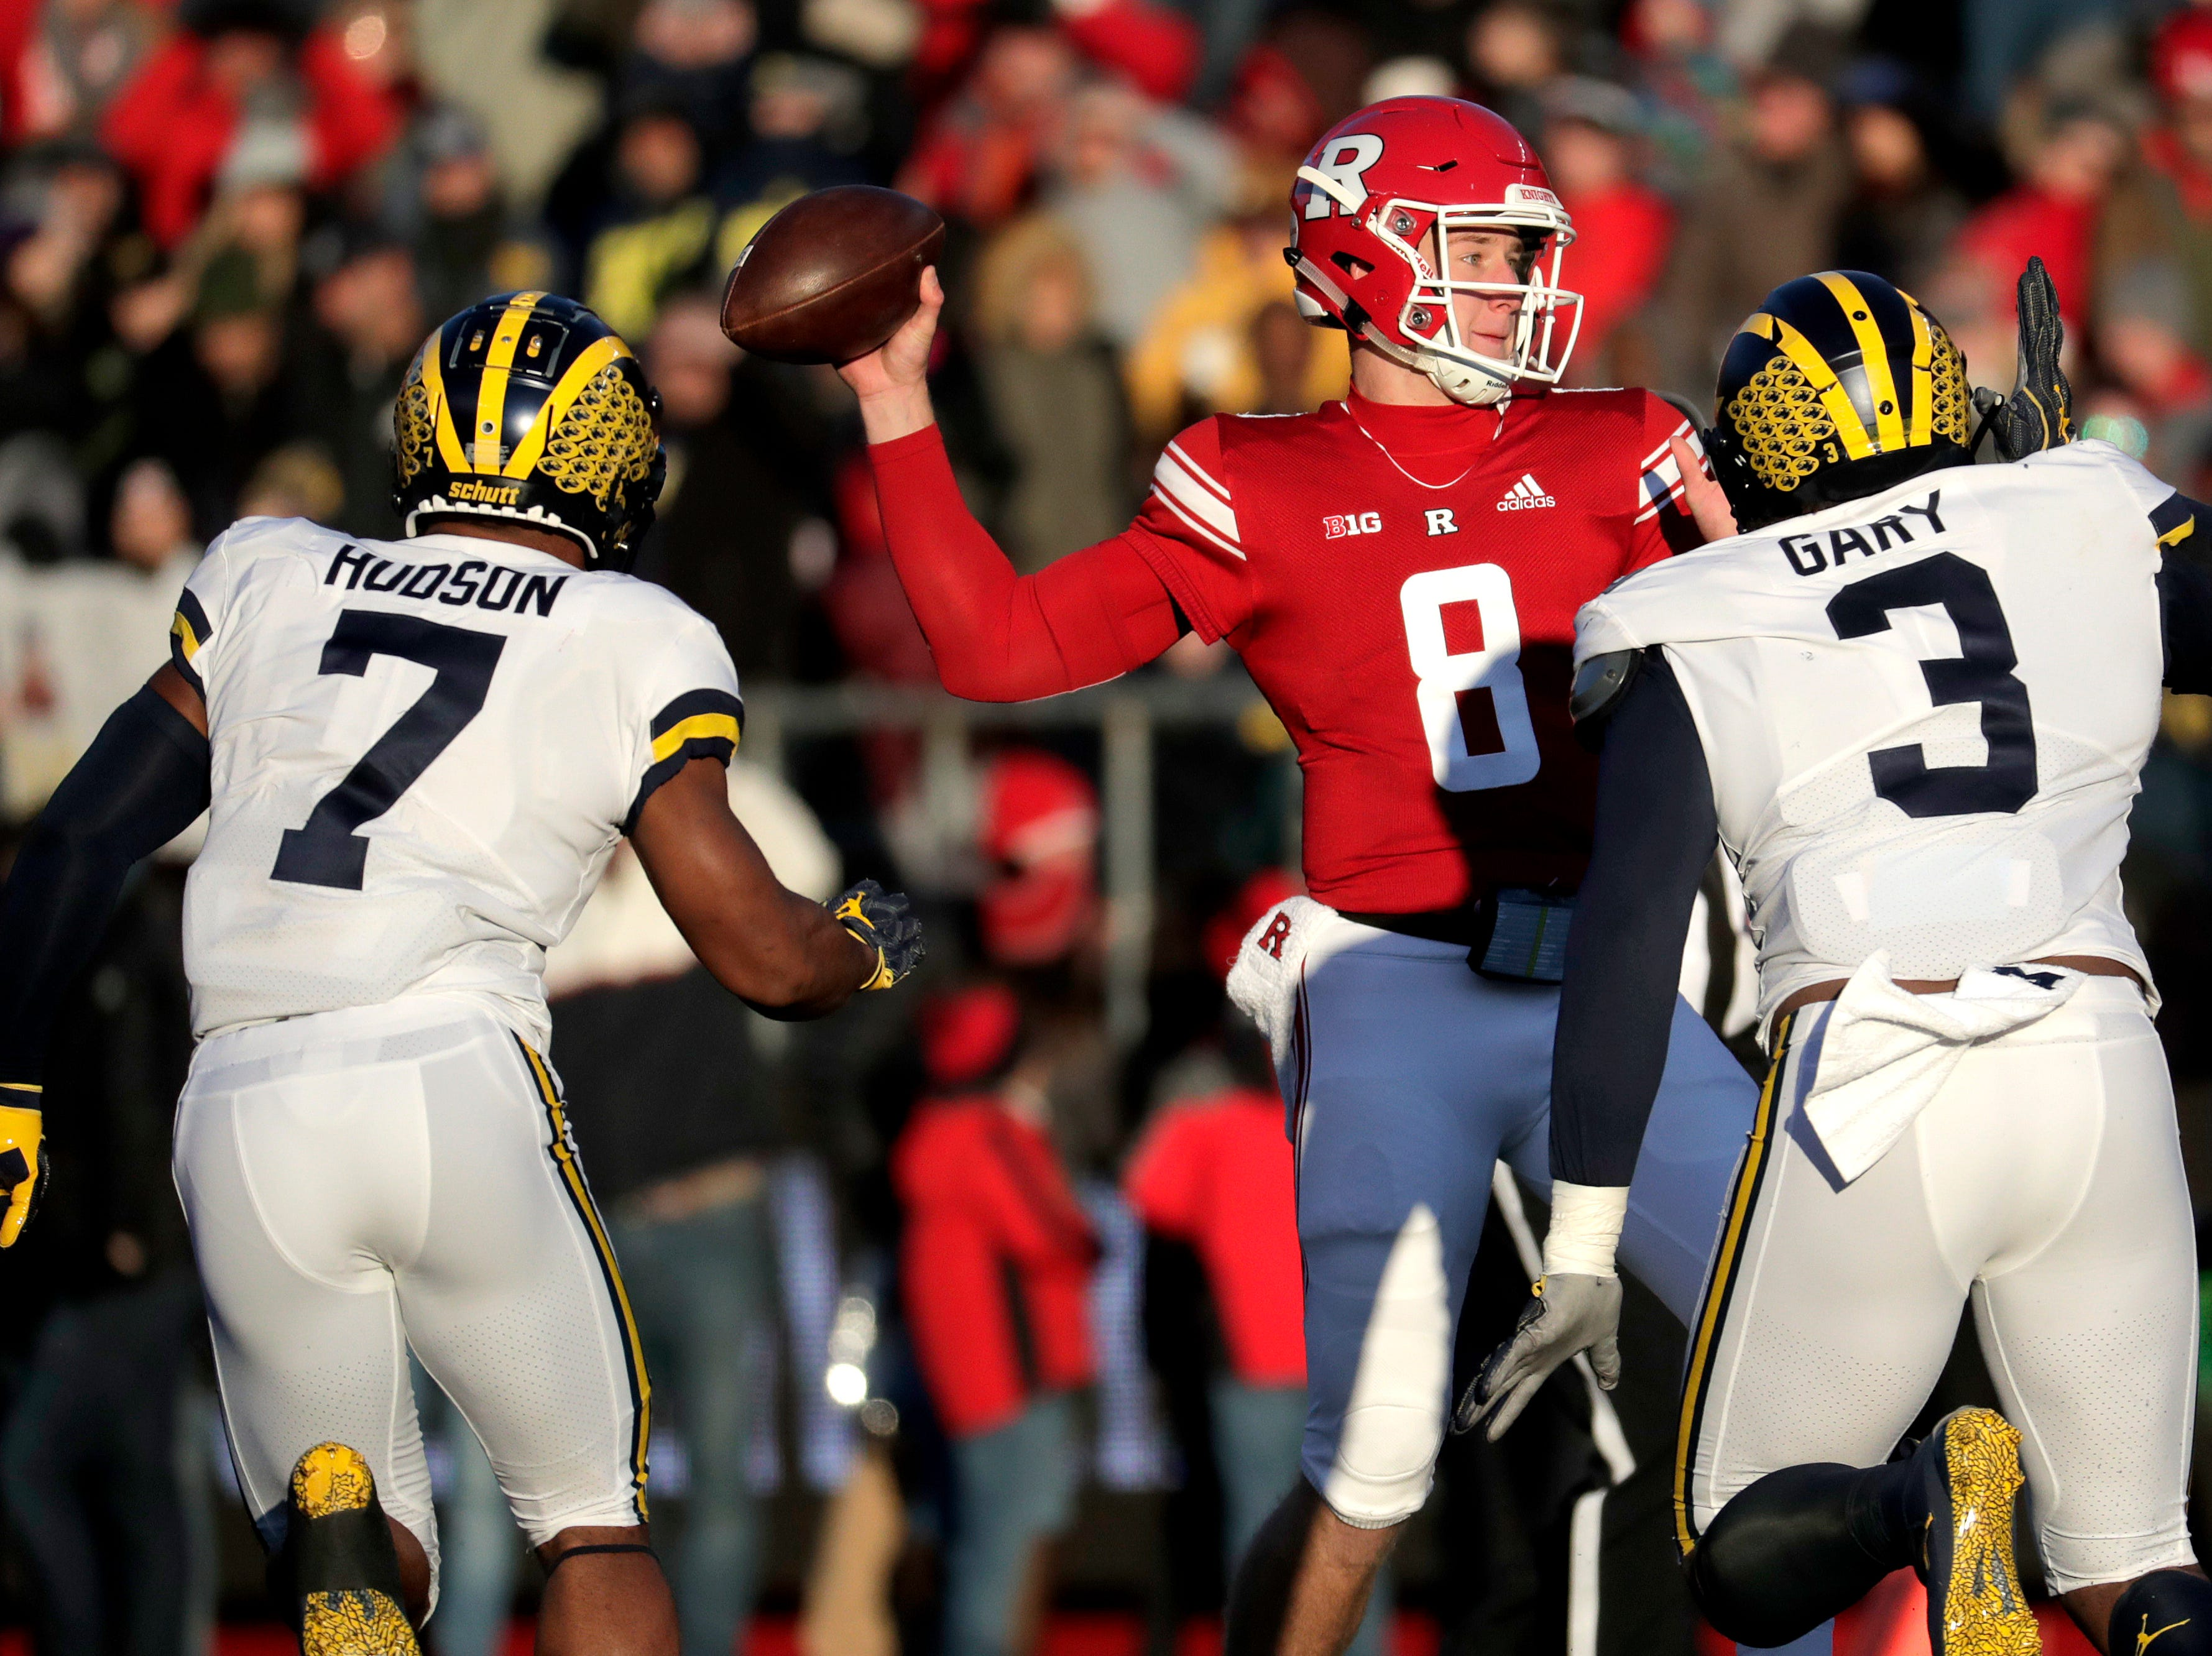 Rutgers quarterback Artur Sitkowski (8) looks to pass as Michigan linebacker Khaleke Hudson (7) and defensive lineman Rashan Gary (3) apply pressure.